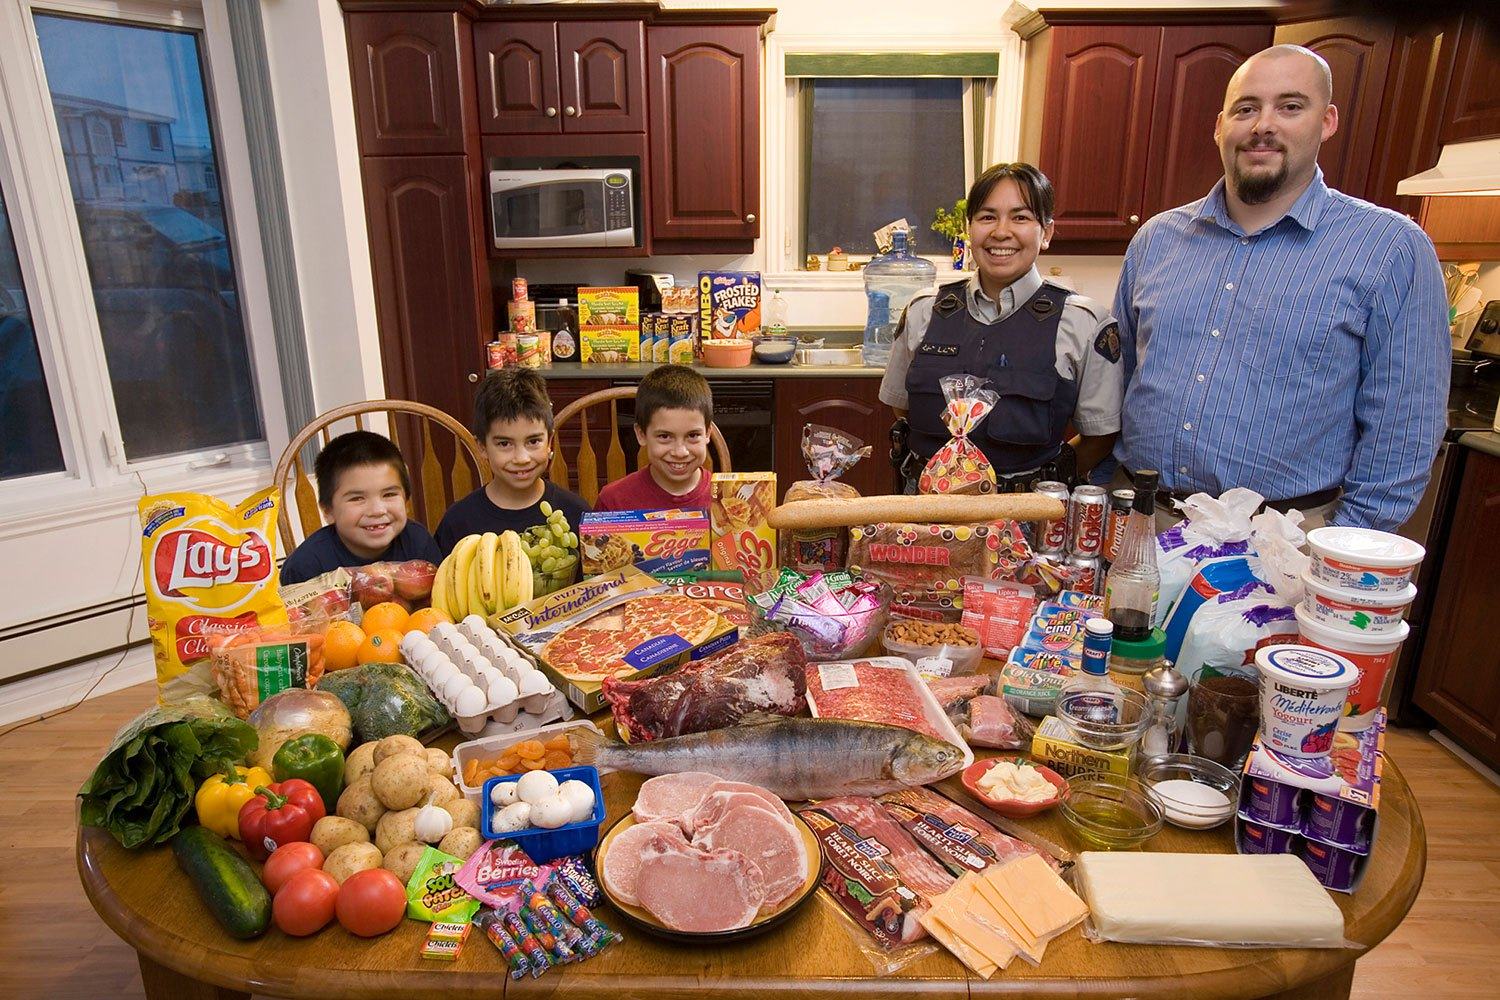 Canada: The Melansons of Iqaluit, Nunavut Territory - Food expenditure for one week: US$345. Favorite Foods: narwhal, polar bear, extra cheese stuffed crust pizza, watermelon.